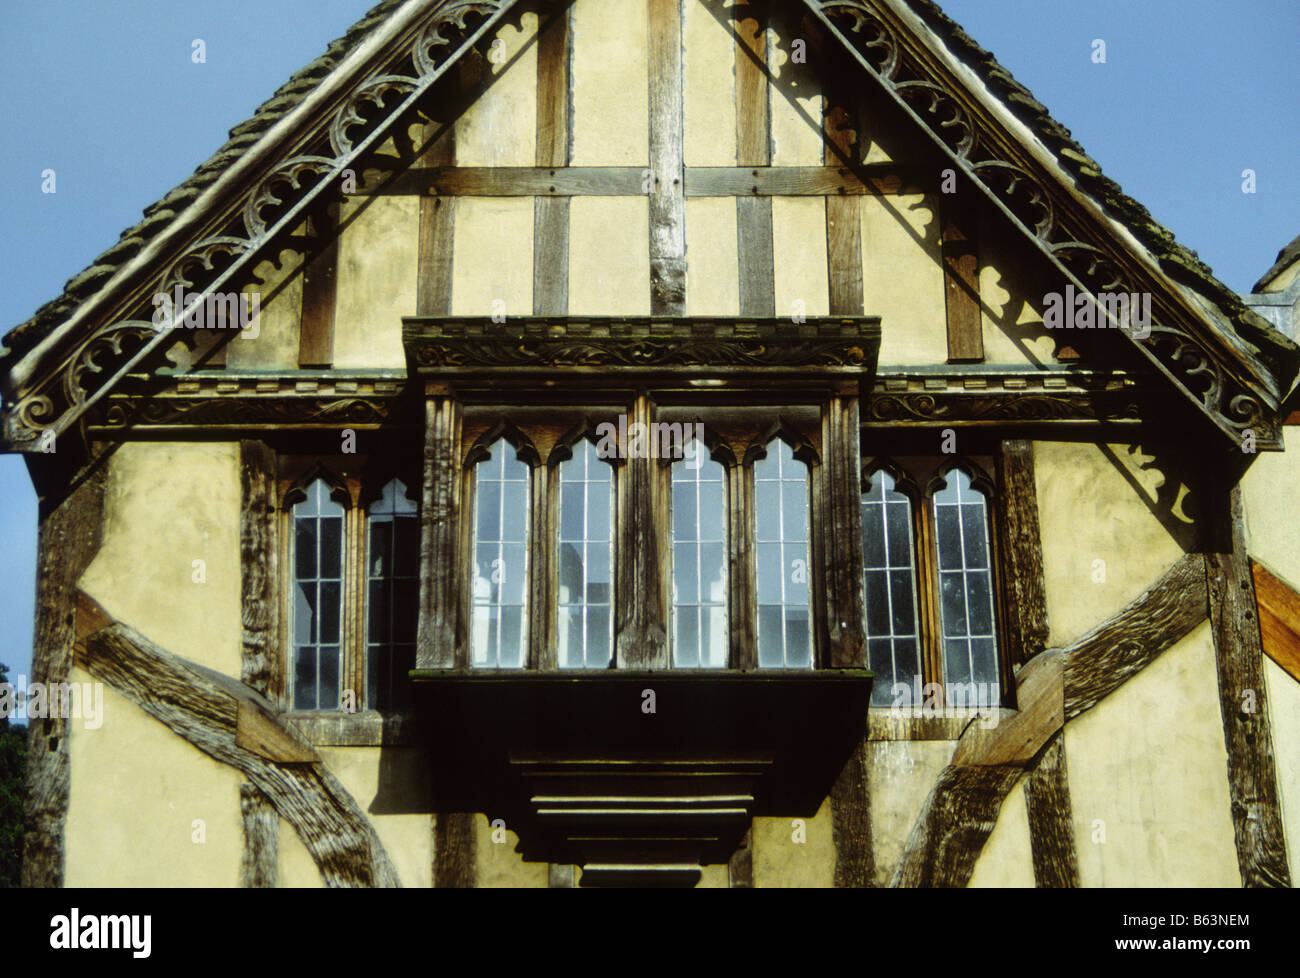 Tudor Facade exterior close up of the facade of a tudor house, showing wooden